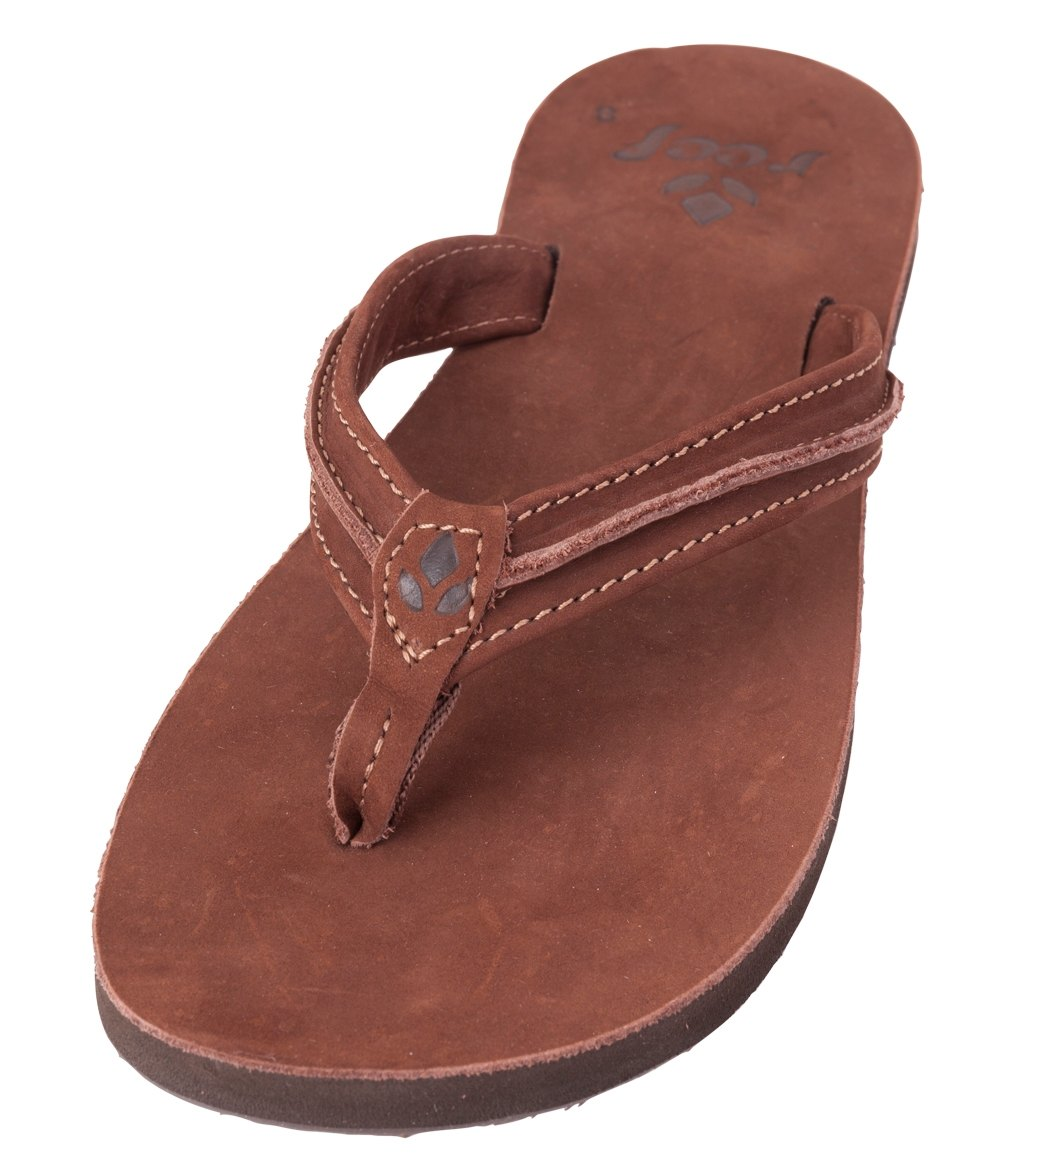 d4b801c5c8c Reef Women s Swing 2 Leather Flip Flop at SwimOutlet.com - Free ...